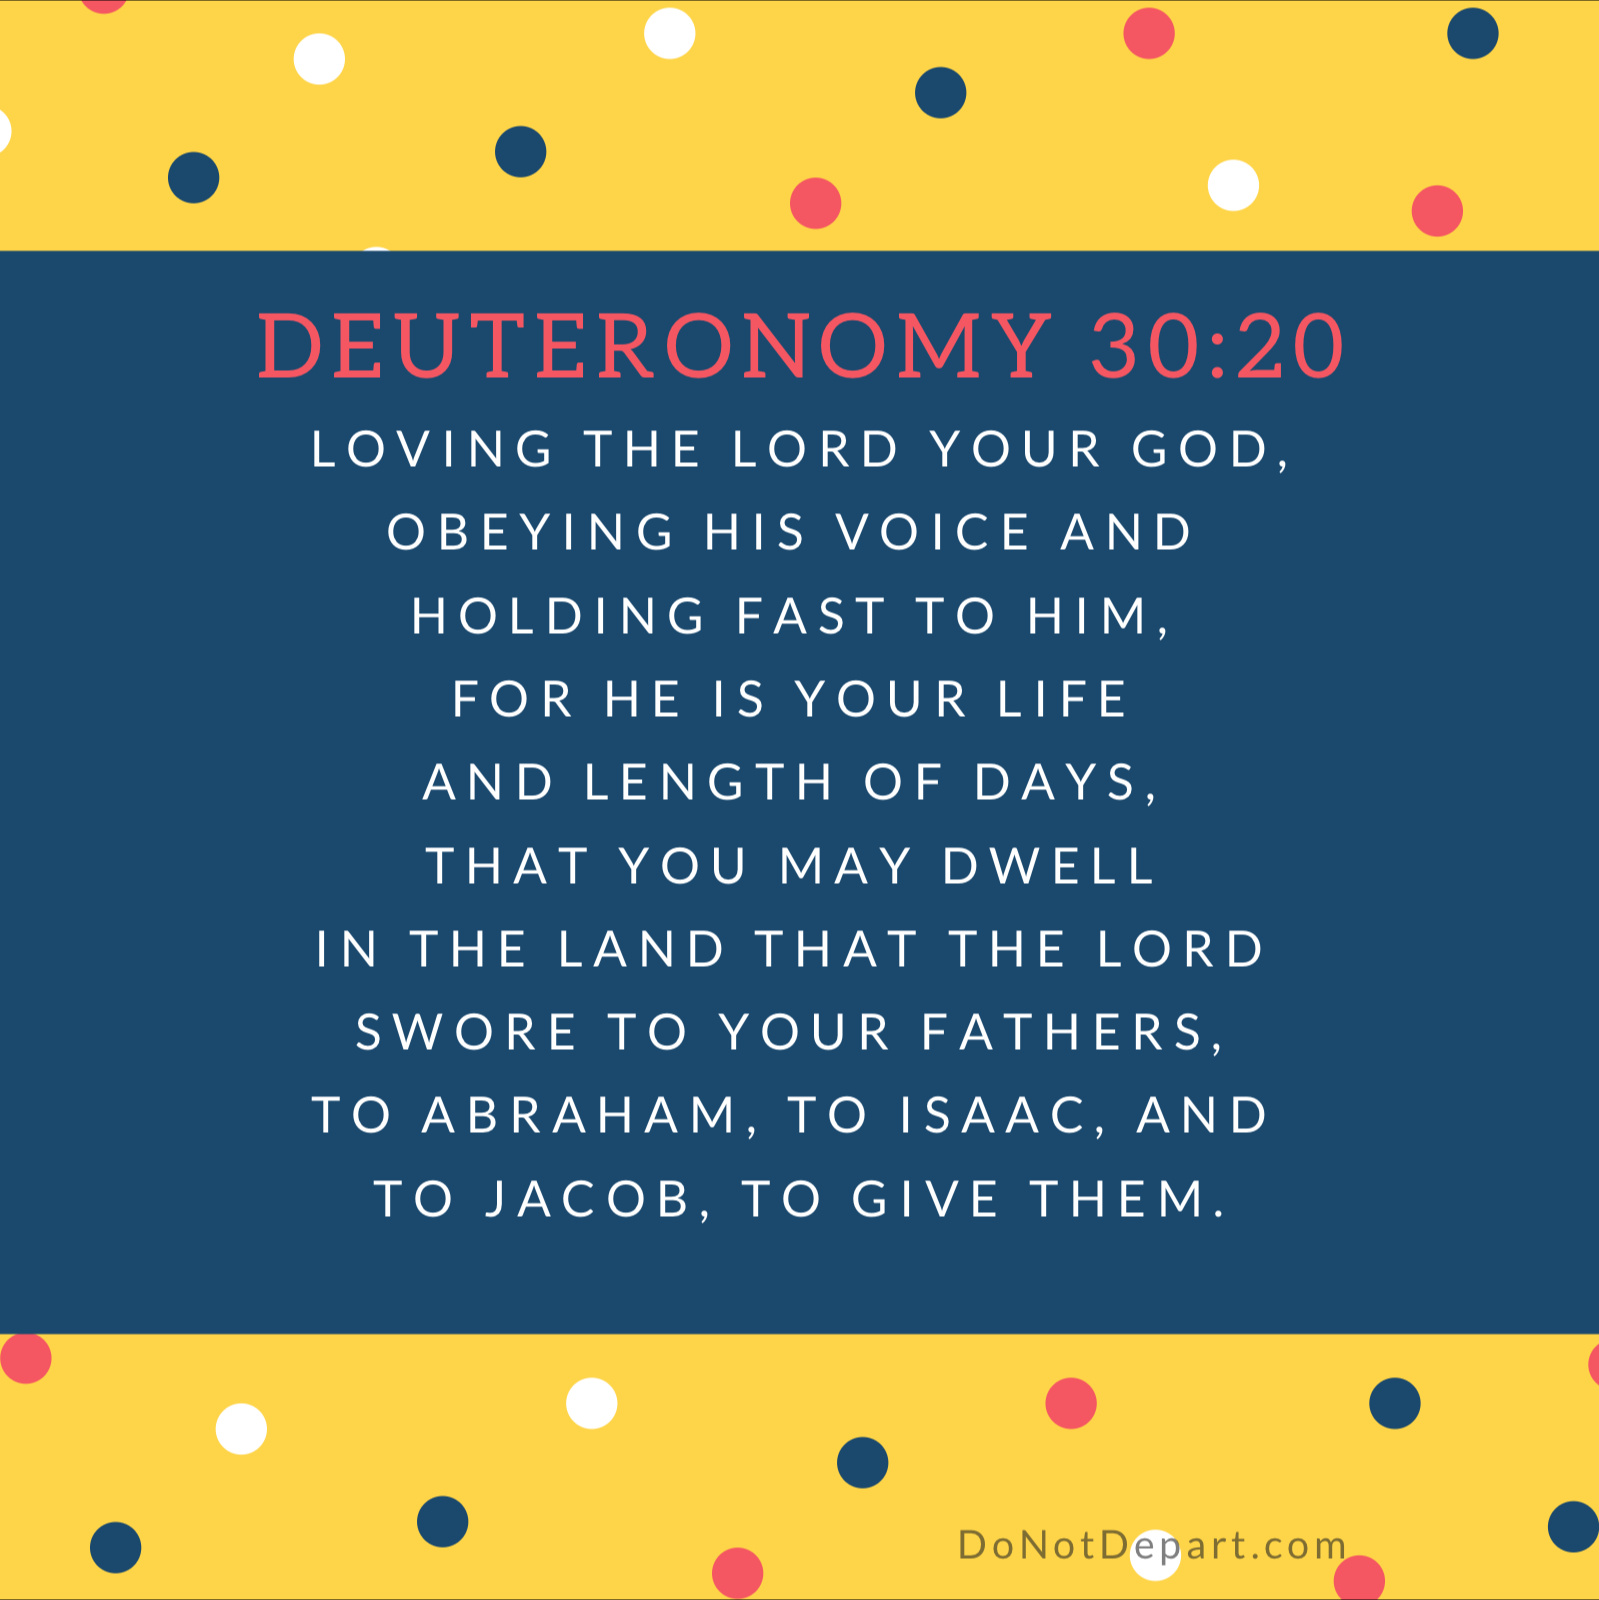 Life, Length, and Land – Memorize Deuteronomy 30:20